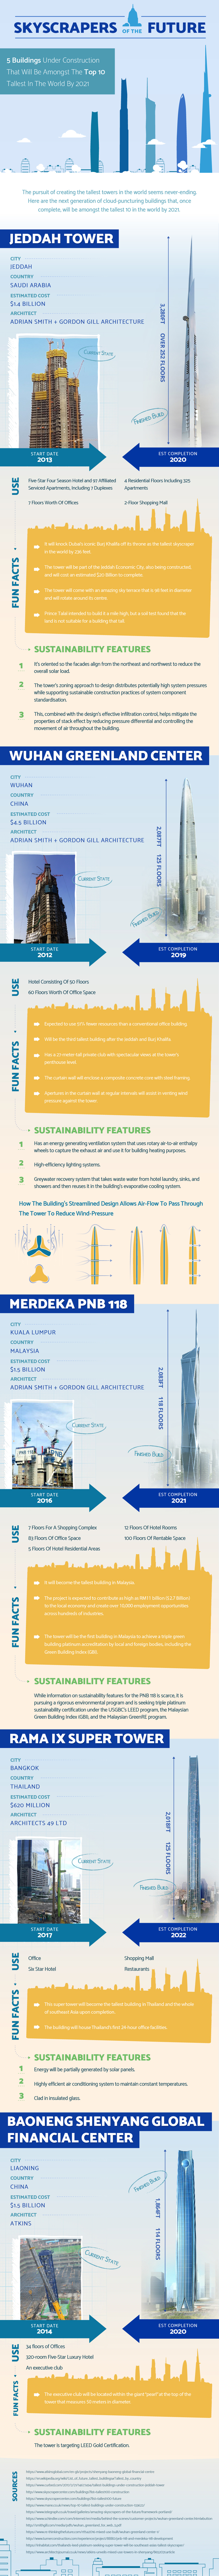 Needles Piercing the Sky: Skyscrapers of the Future - Infographic